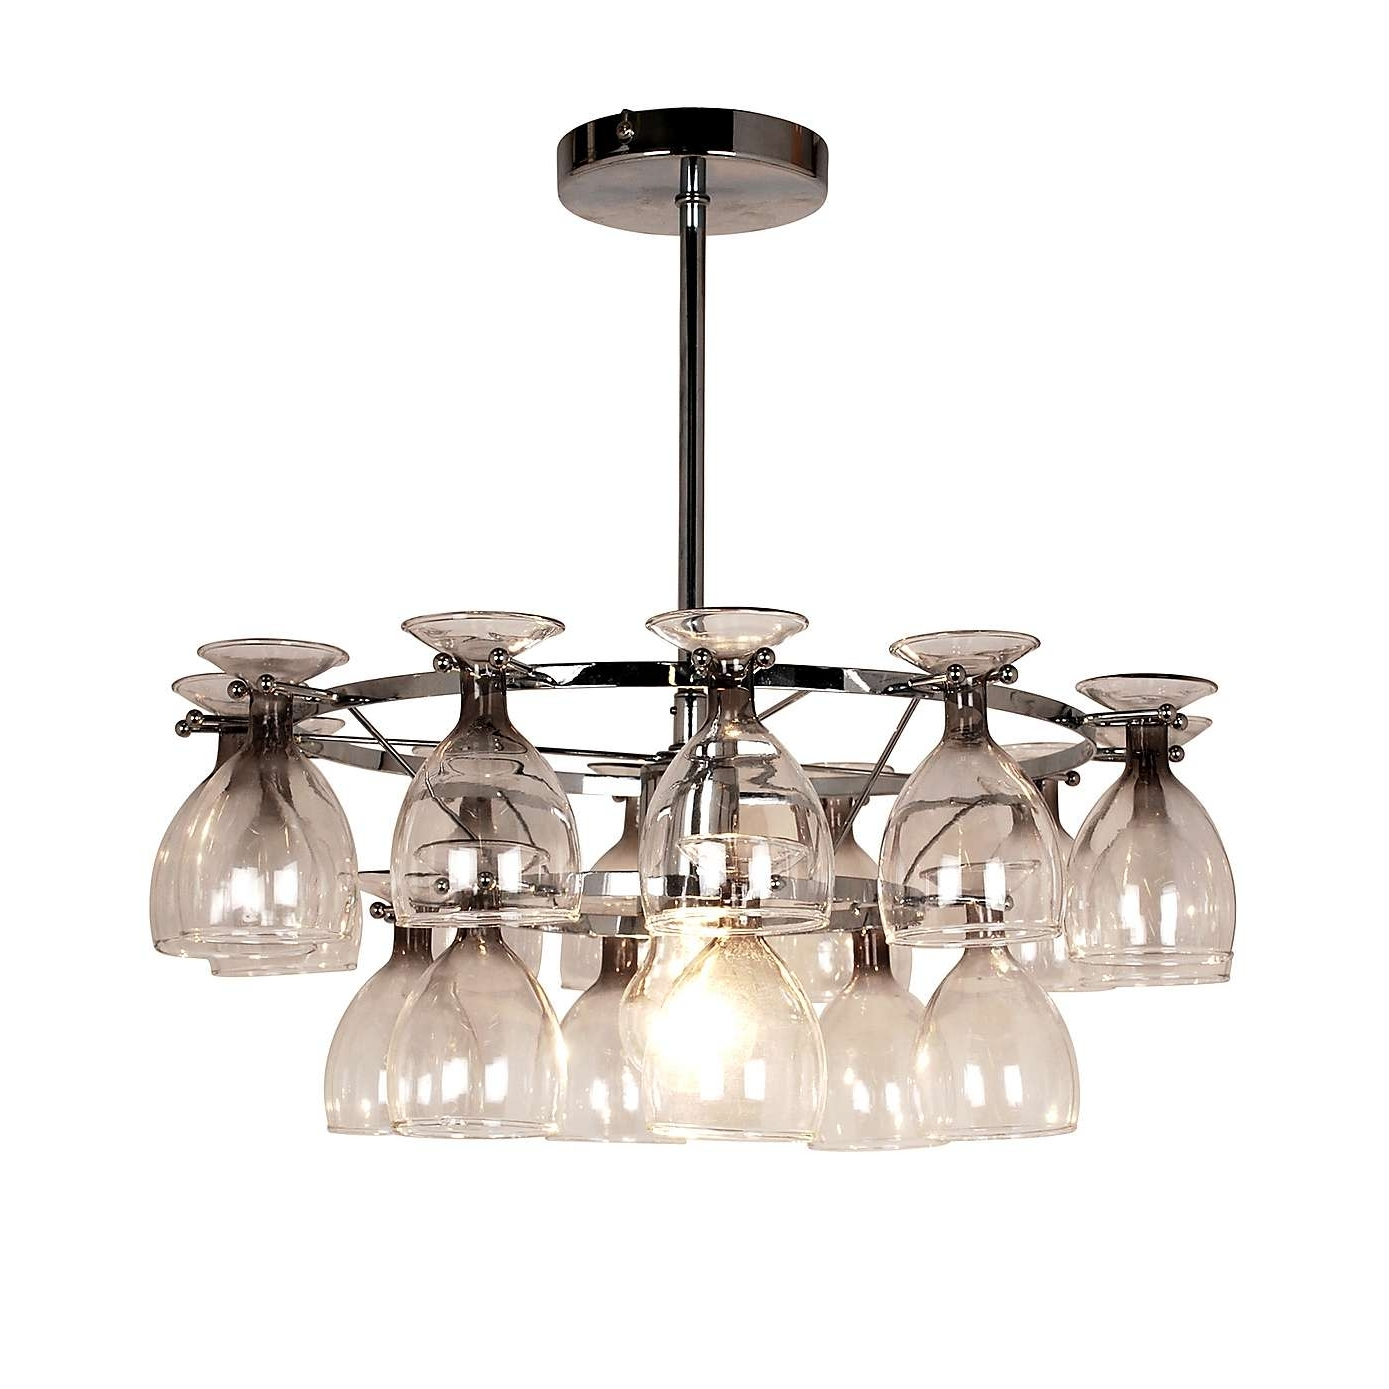 Preferred Light Fitting Chandeliers Intended For 5 Beautiful Wine Glass Light Fittings (View 10 of 20)